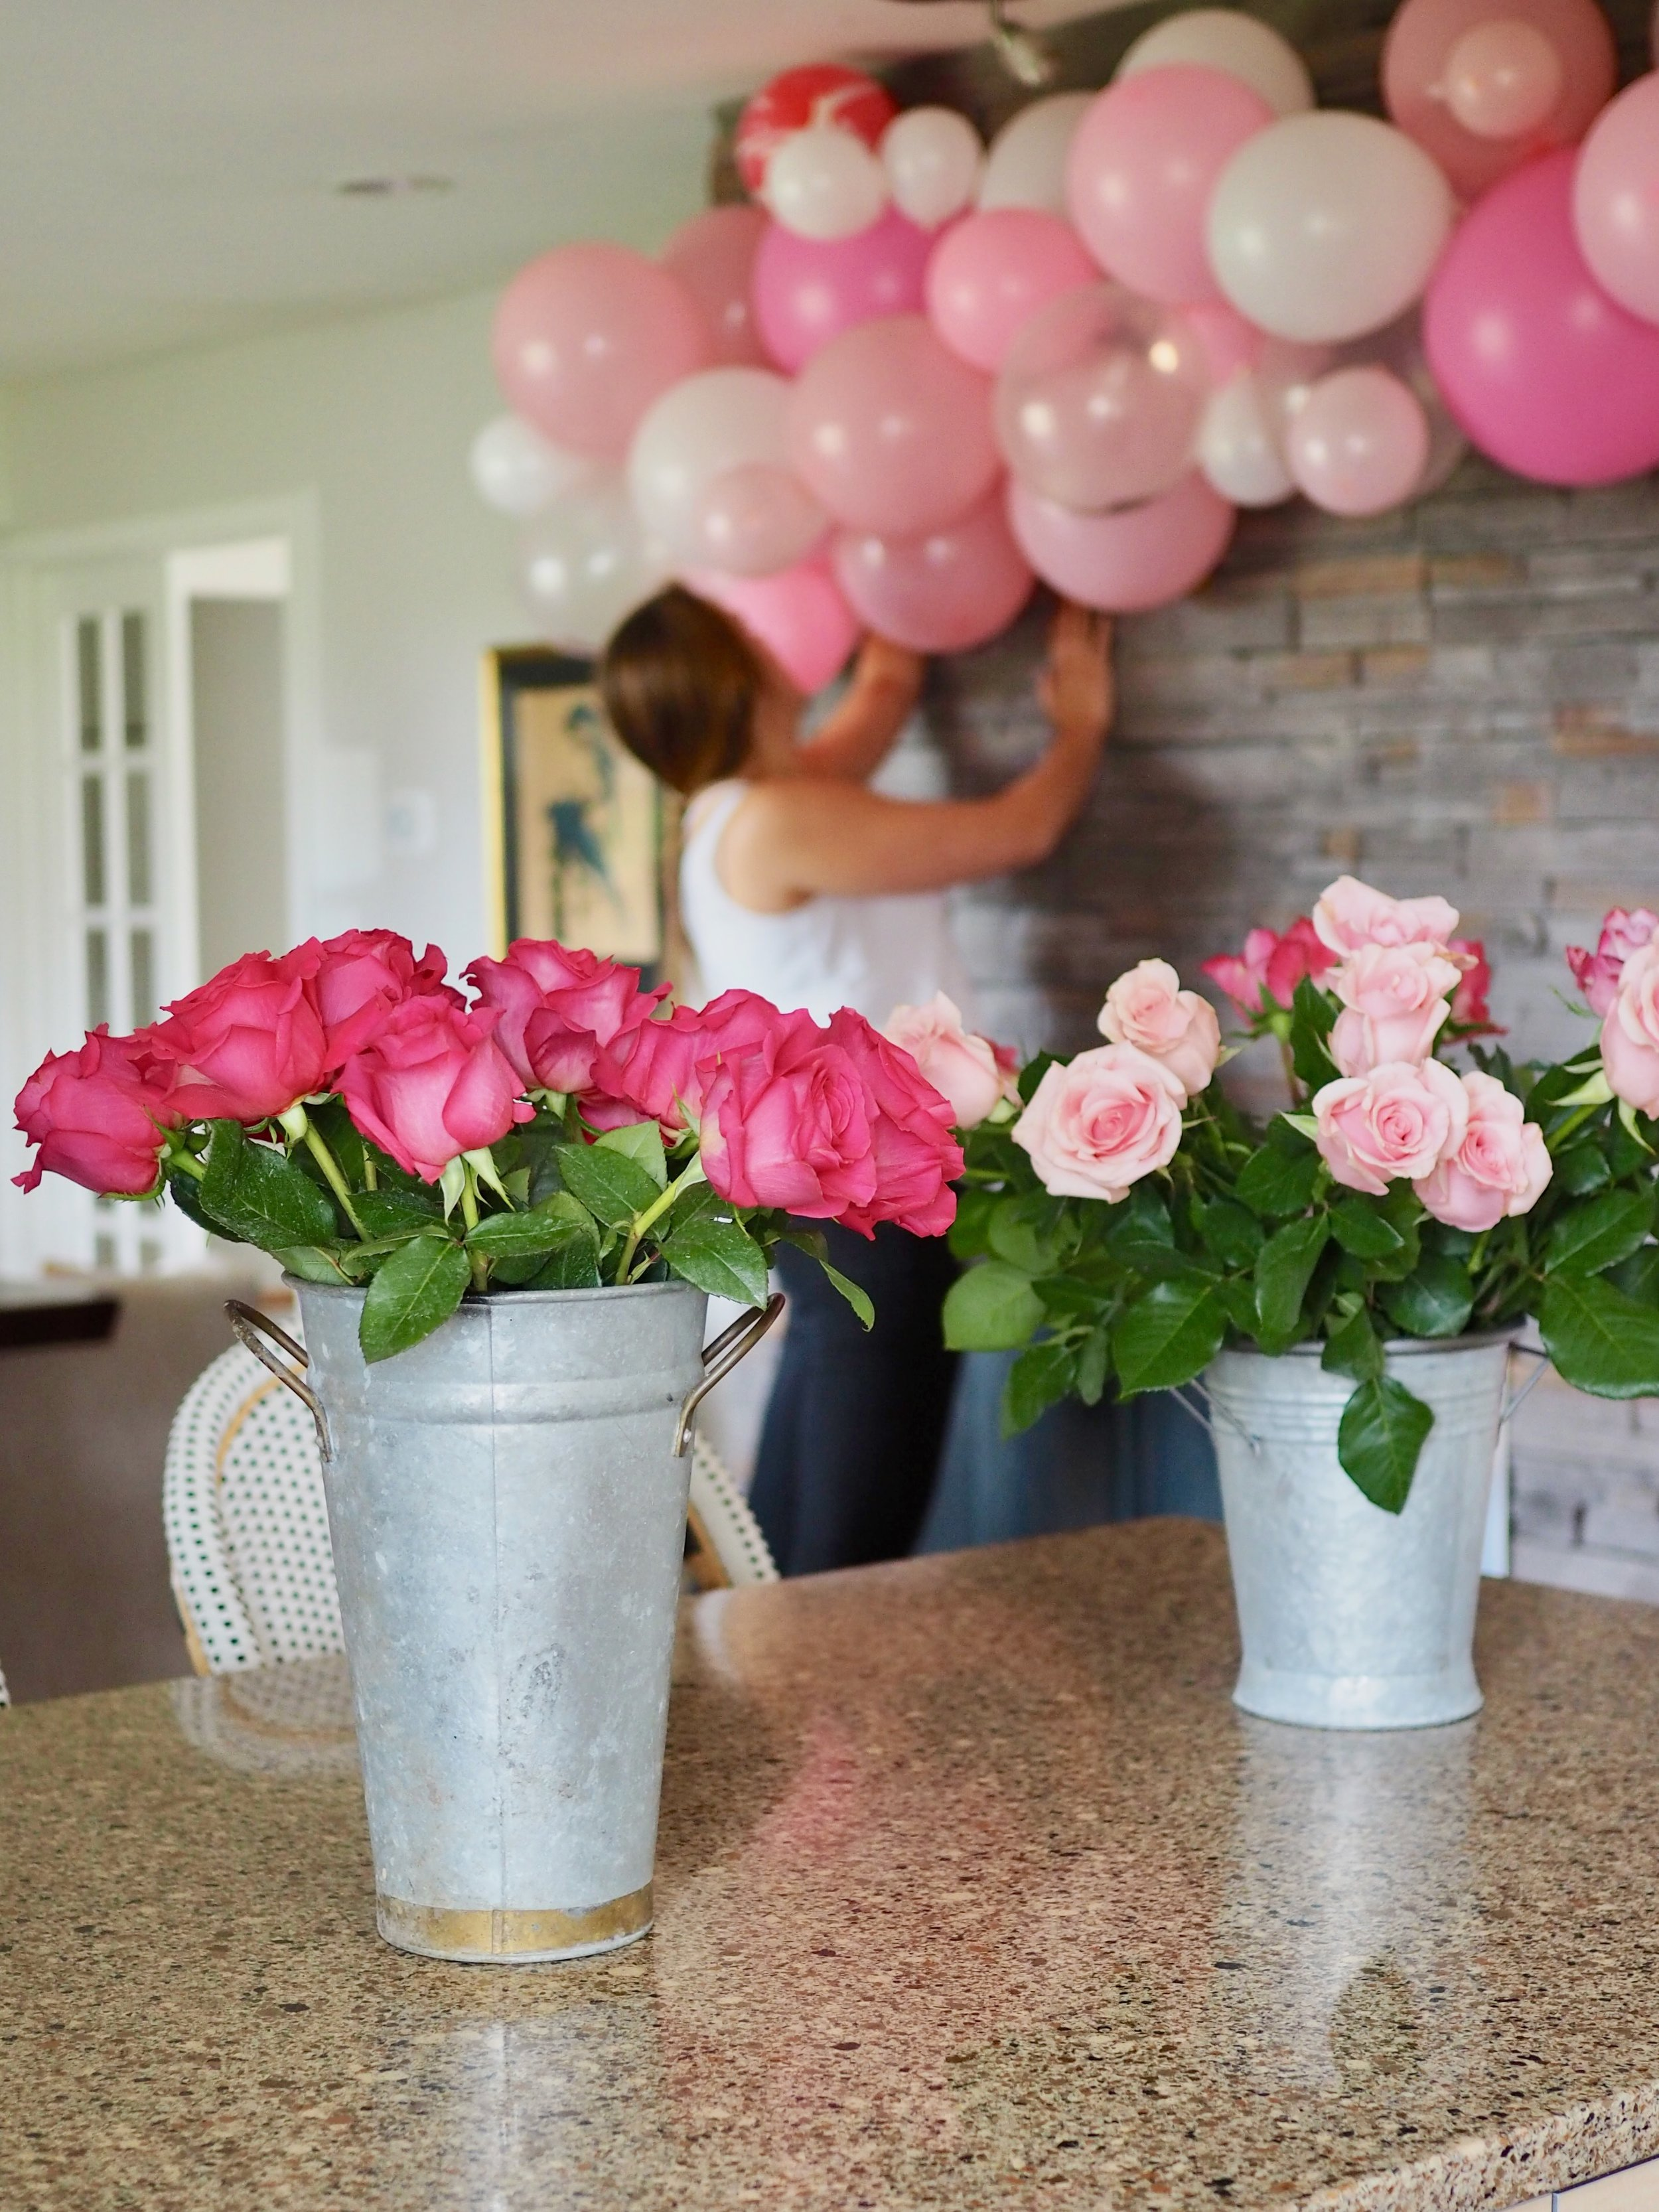 French market-style roses and Christina putting the finishing touches on a pink balloon garland